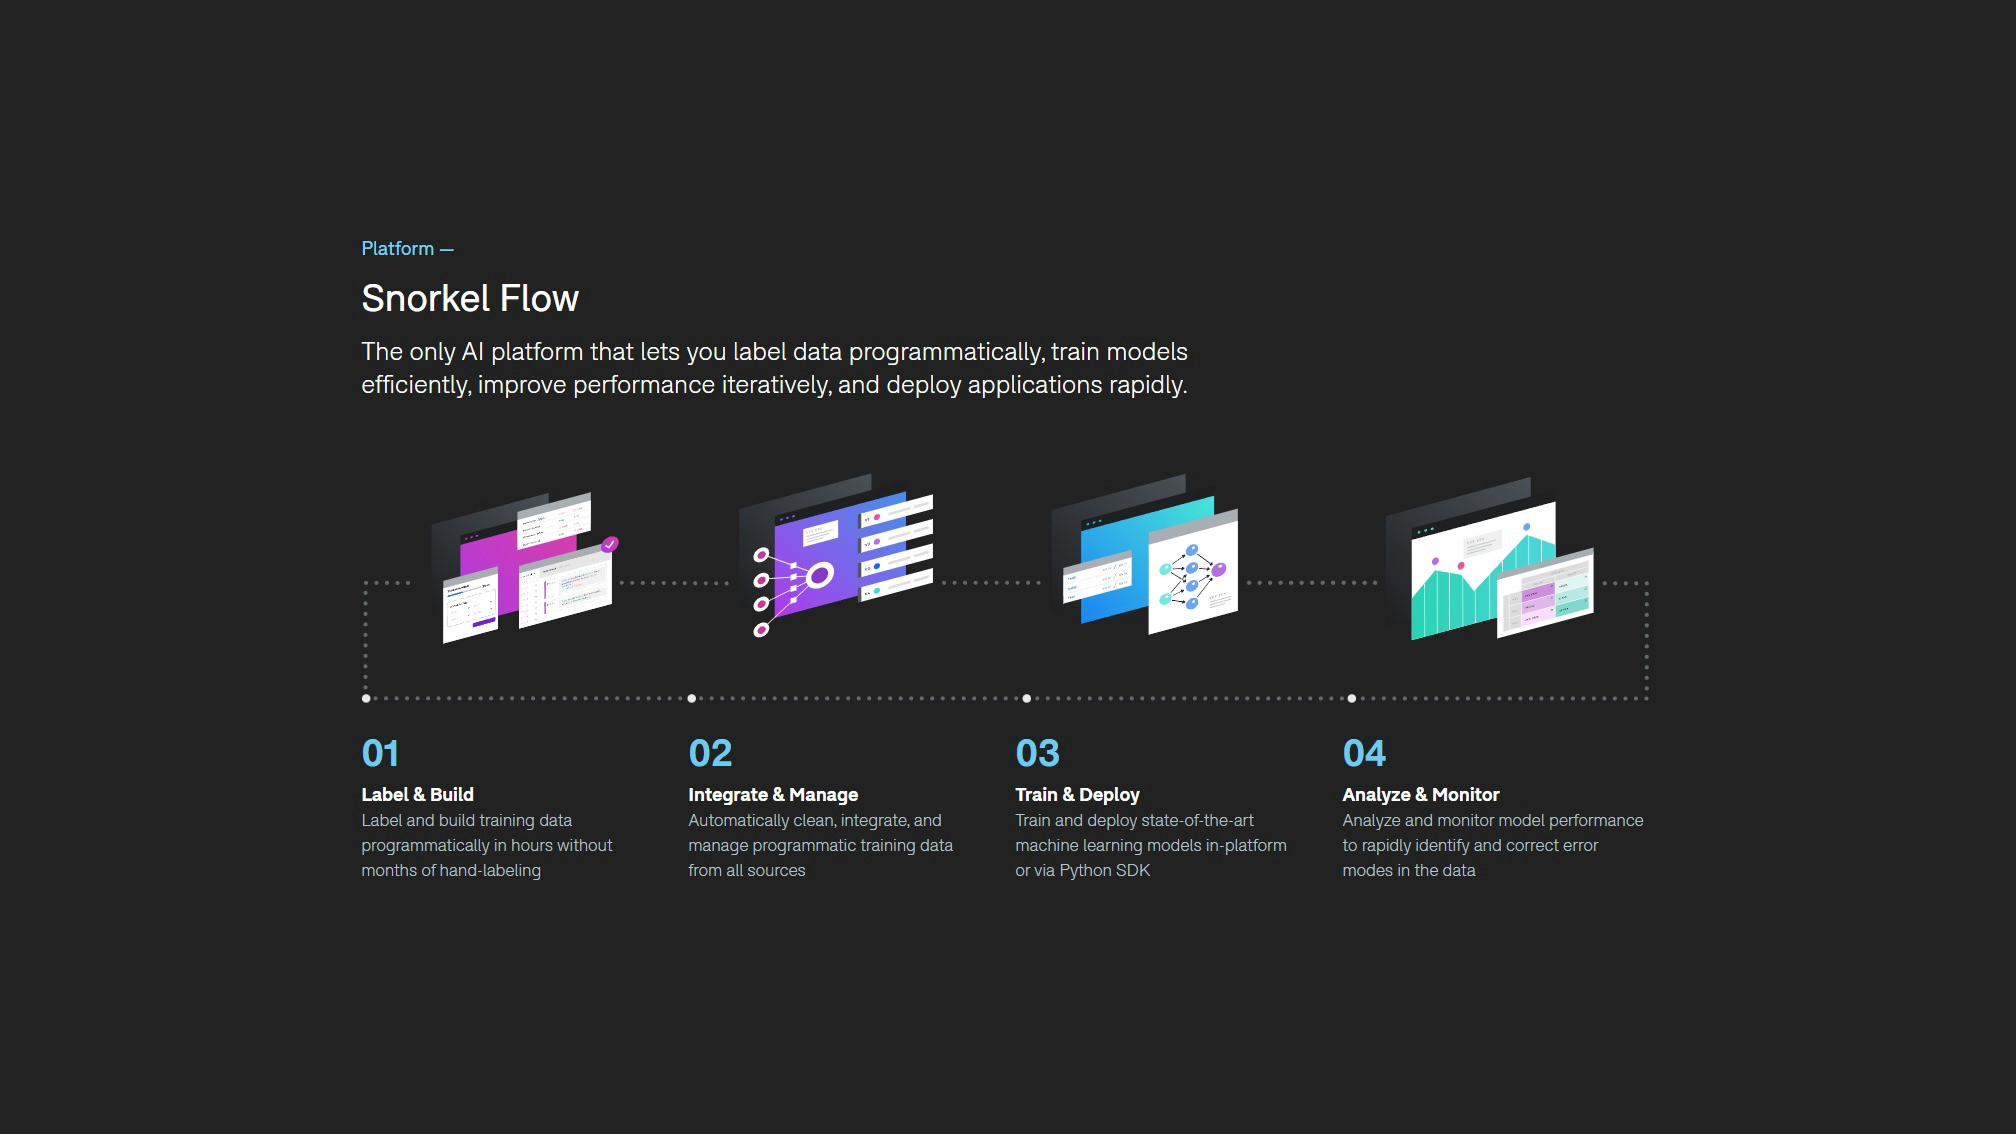 The Data-centric AI Platform for Enterprise AI, Snorkel AI: the image showcases the features of Snorkel Flow, label and build, integrate and manage, train and deploy, and analyze and monitor